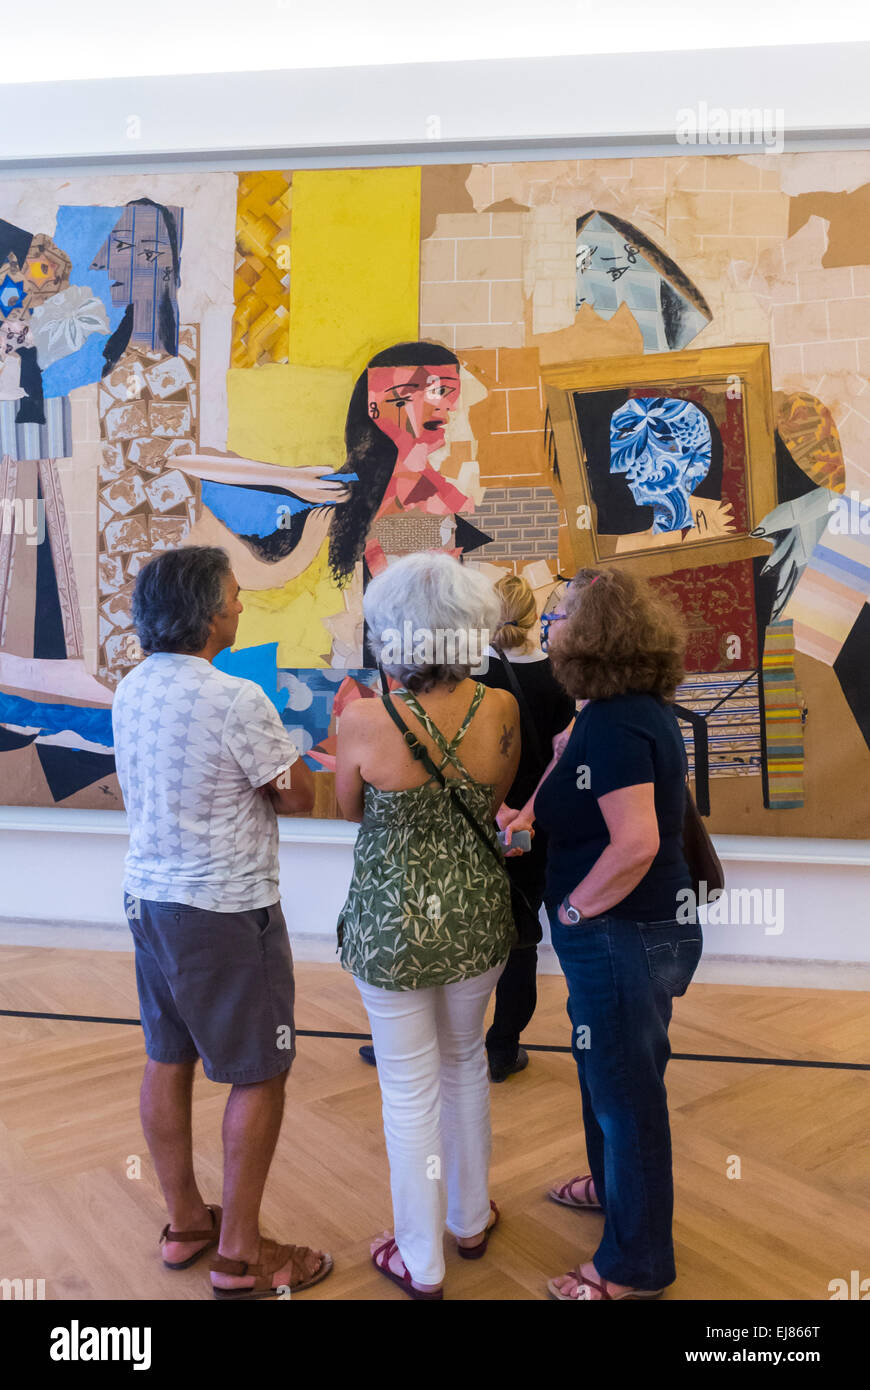 Paris, France, Group Women Tourists Visit inside Picasso Museum, Looking at Modern Paintings in Art Gallery - Stock Image